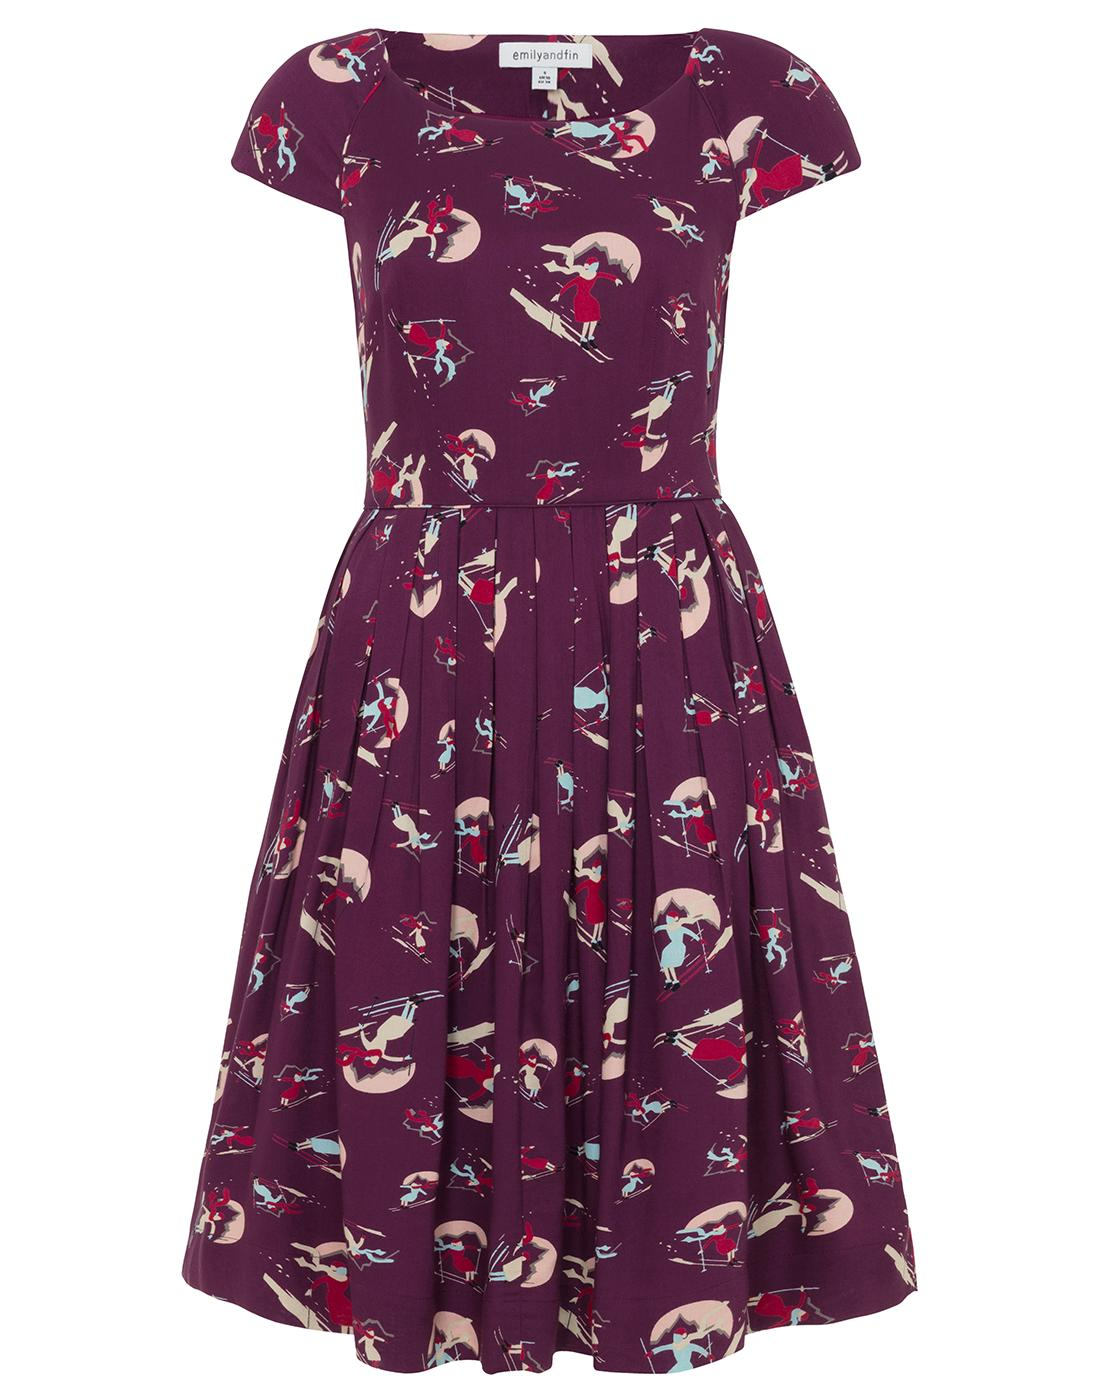 Claudia EMILY AND FIN Retro Vintage Skiers Dress